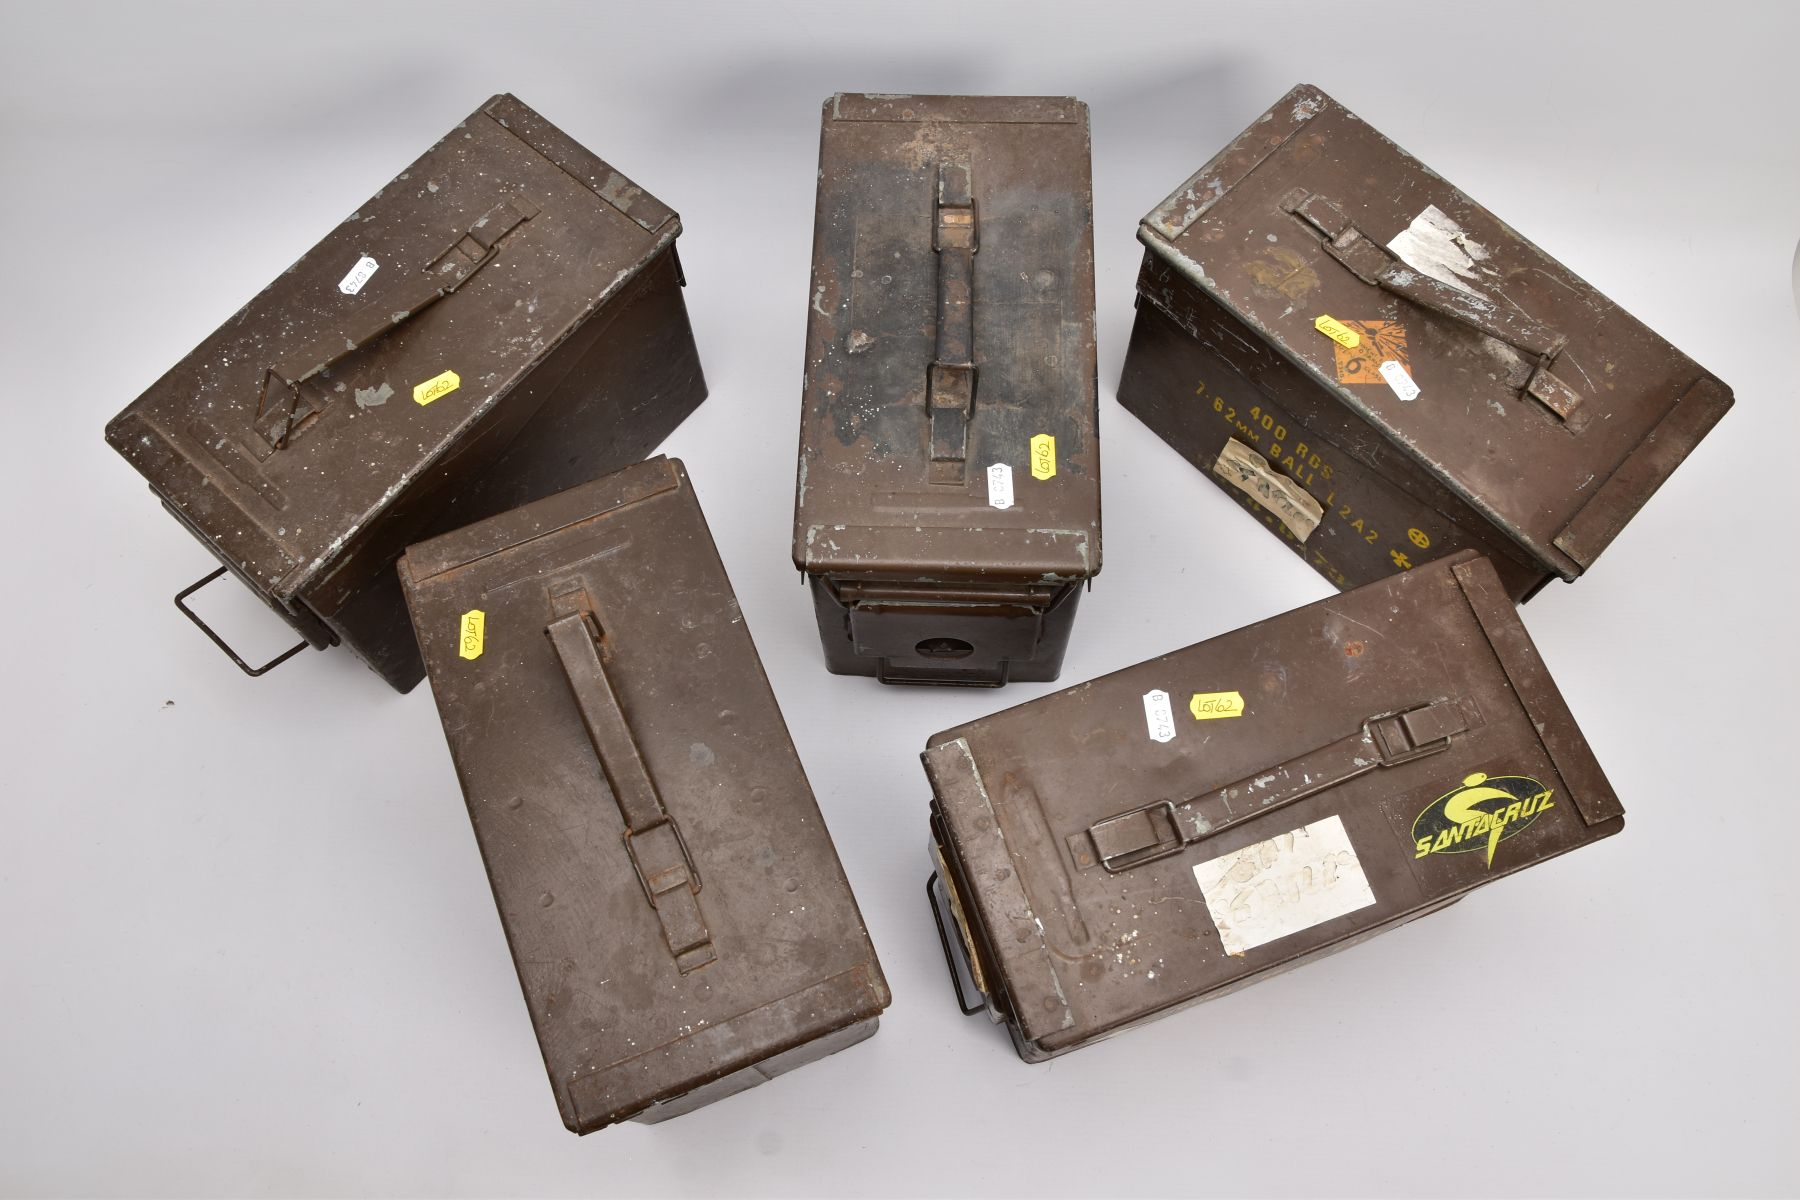 FIVE METAL MILITARY AMMUNITION BOXES WWII and later era, two of them being marked 5.56mm and 7.62mm, - Image 3 of 3